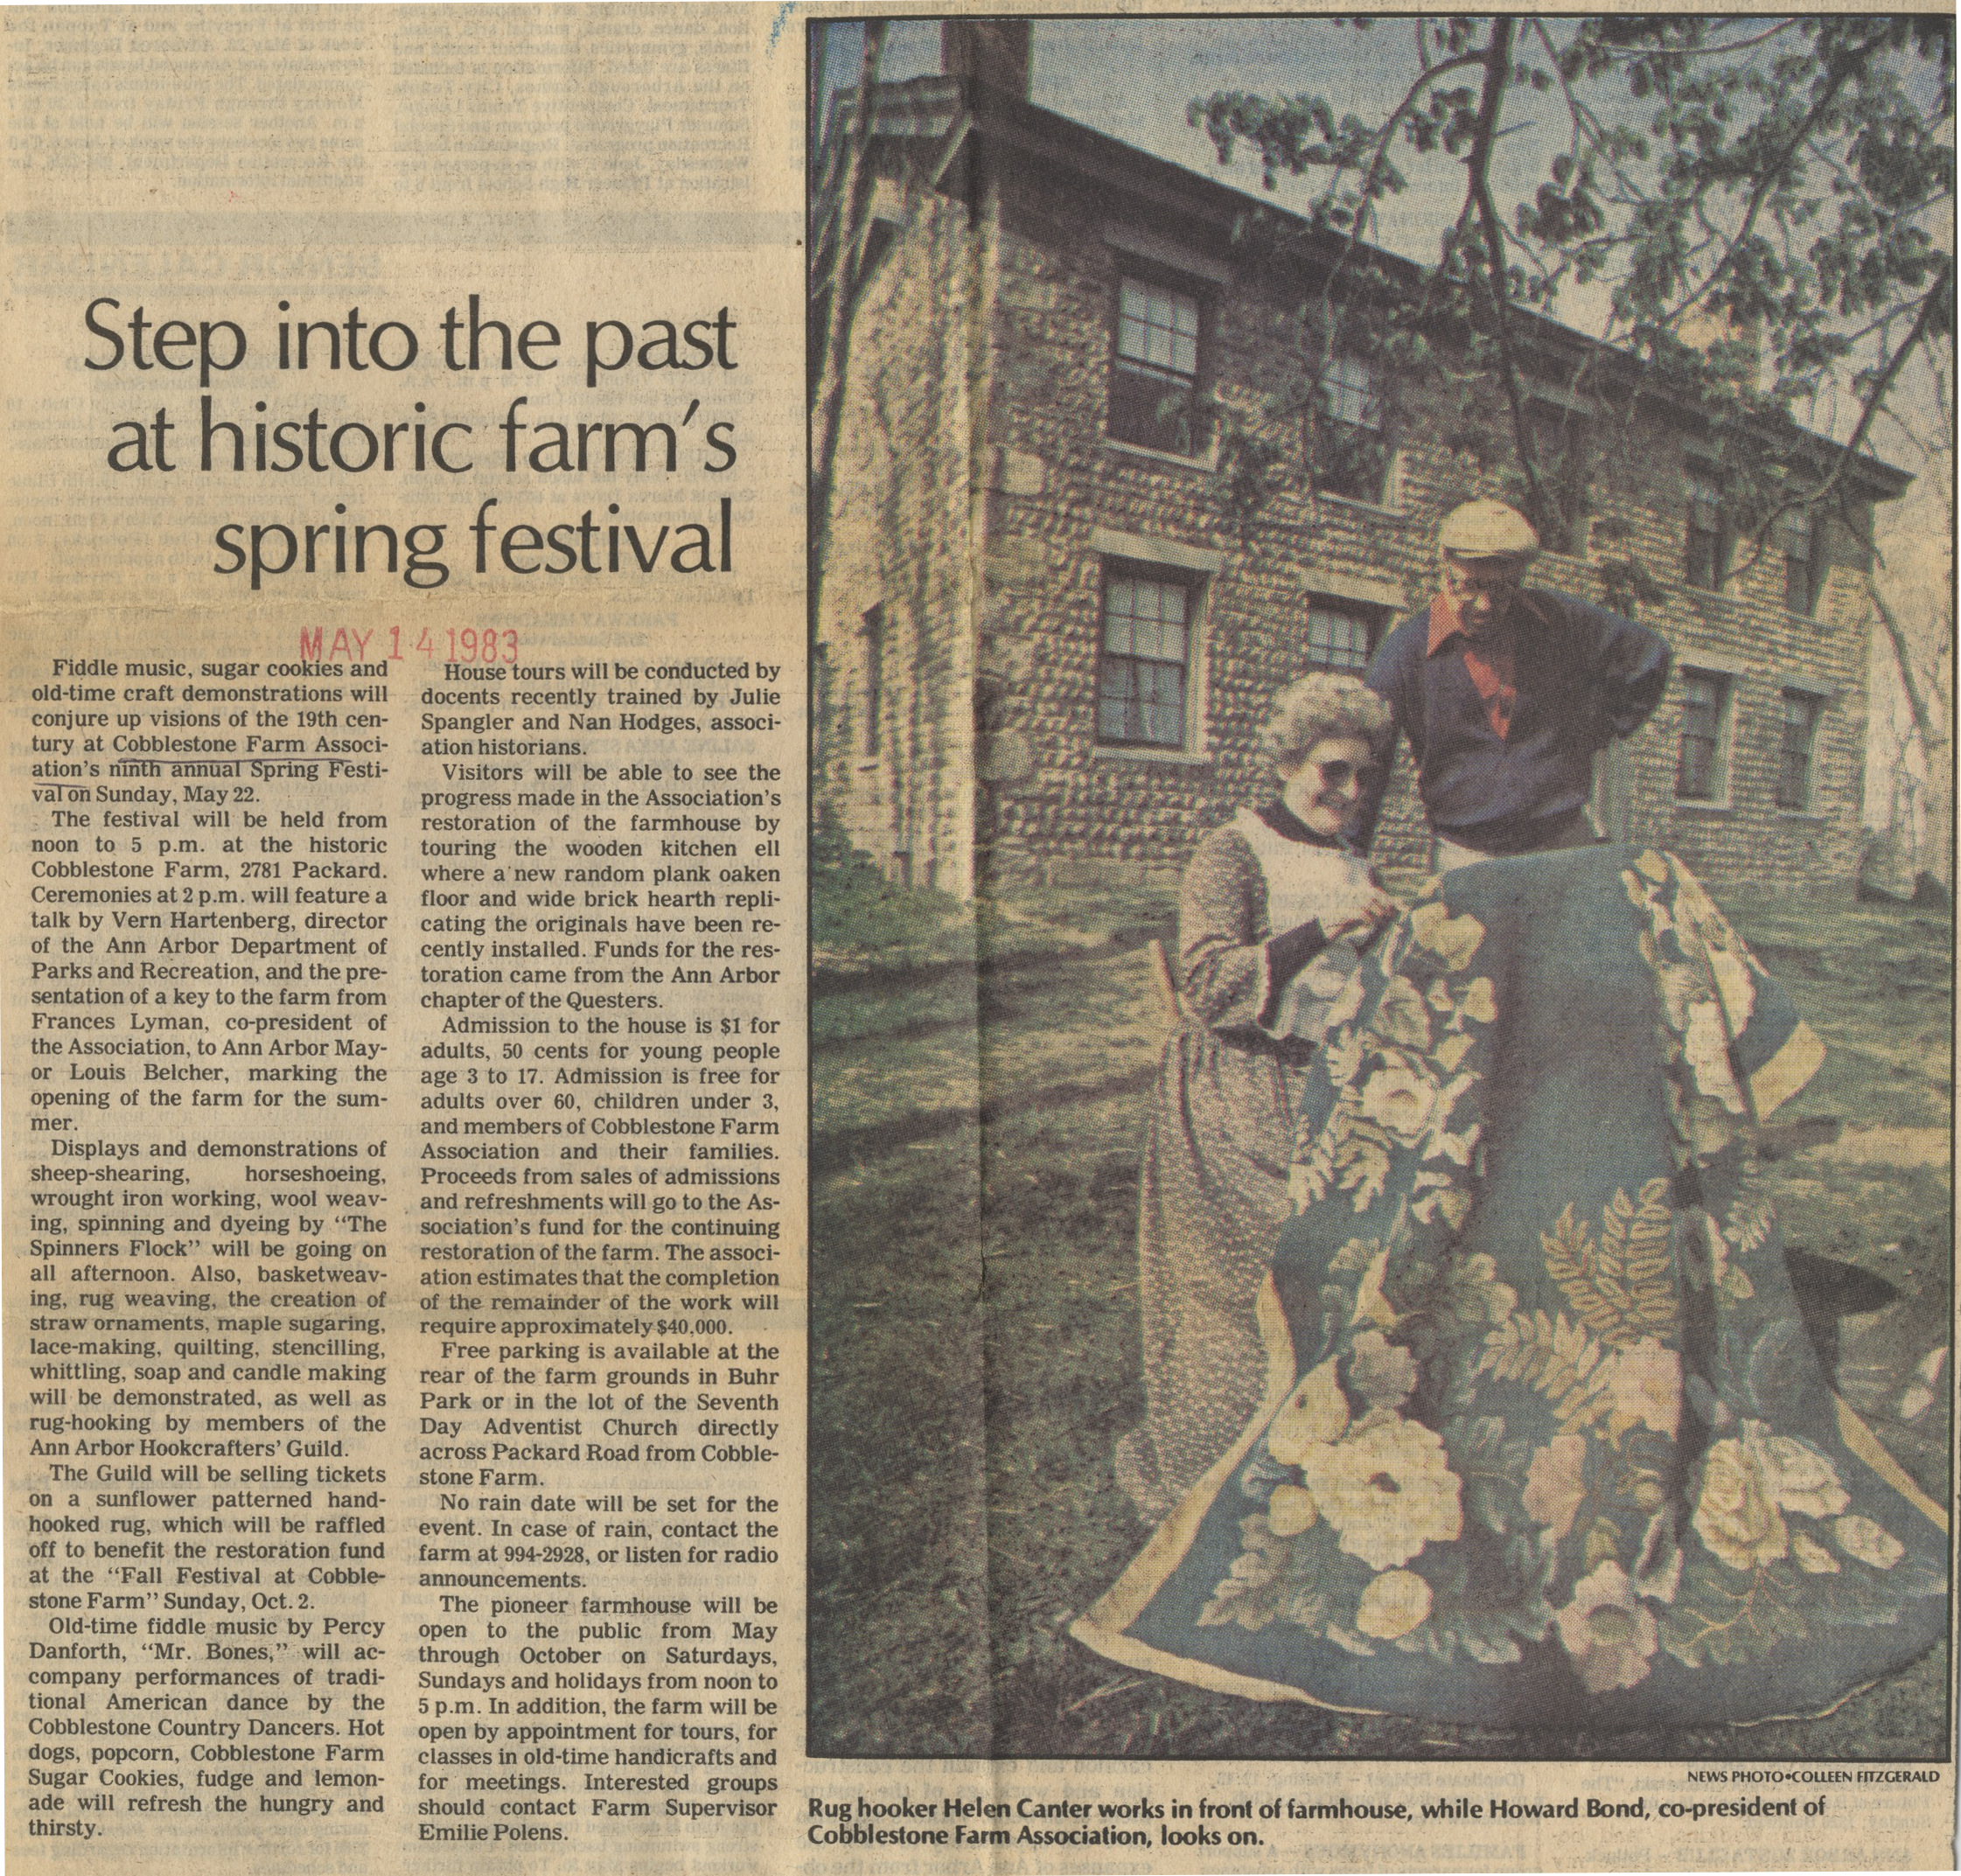 Step Into The Past At Historic Farm's Spring Festival image